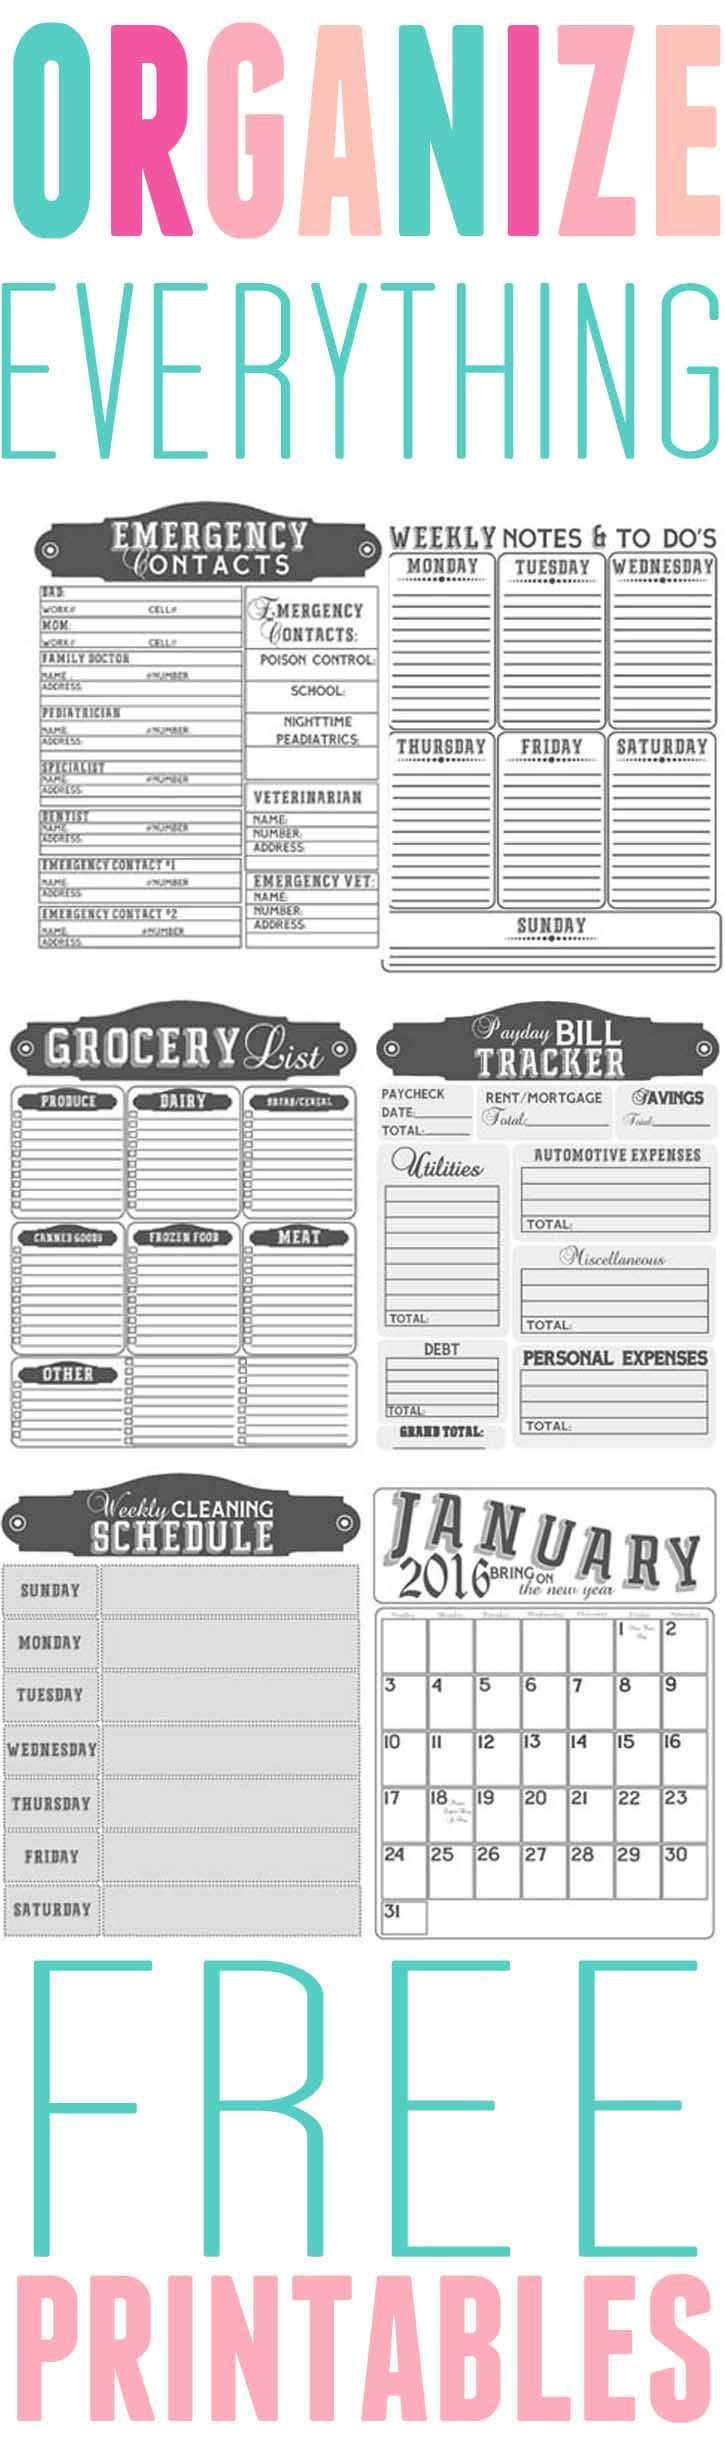 My Family Dollar Life Pay Stub - Organization free printables to help you organize every aspect of your life super simple